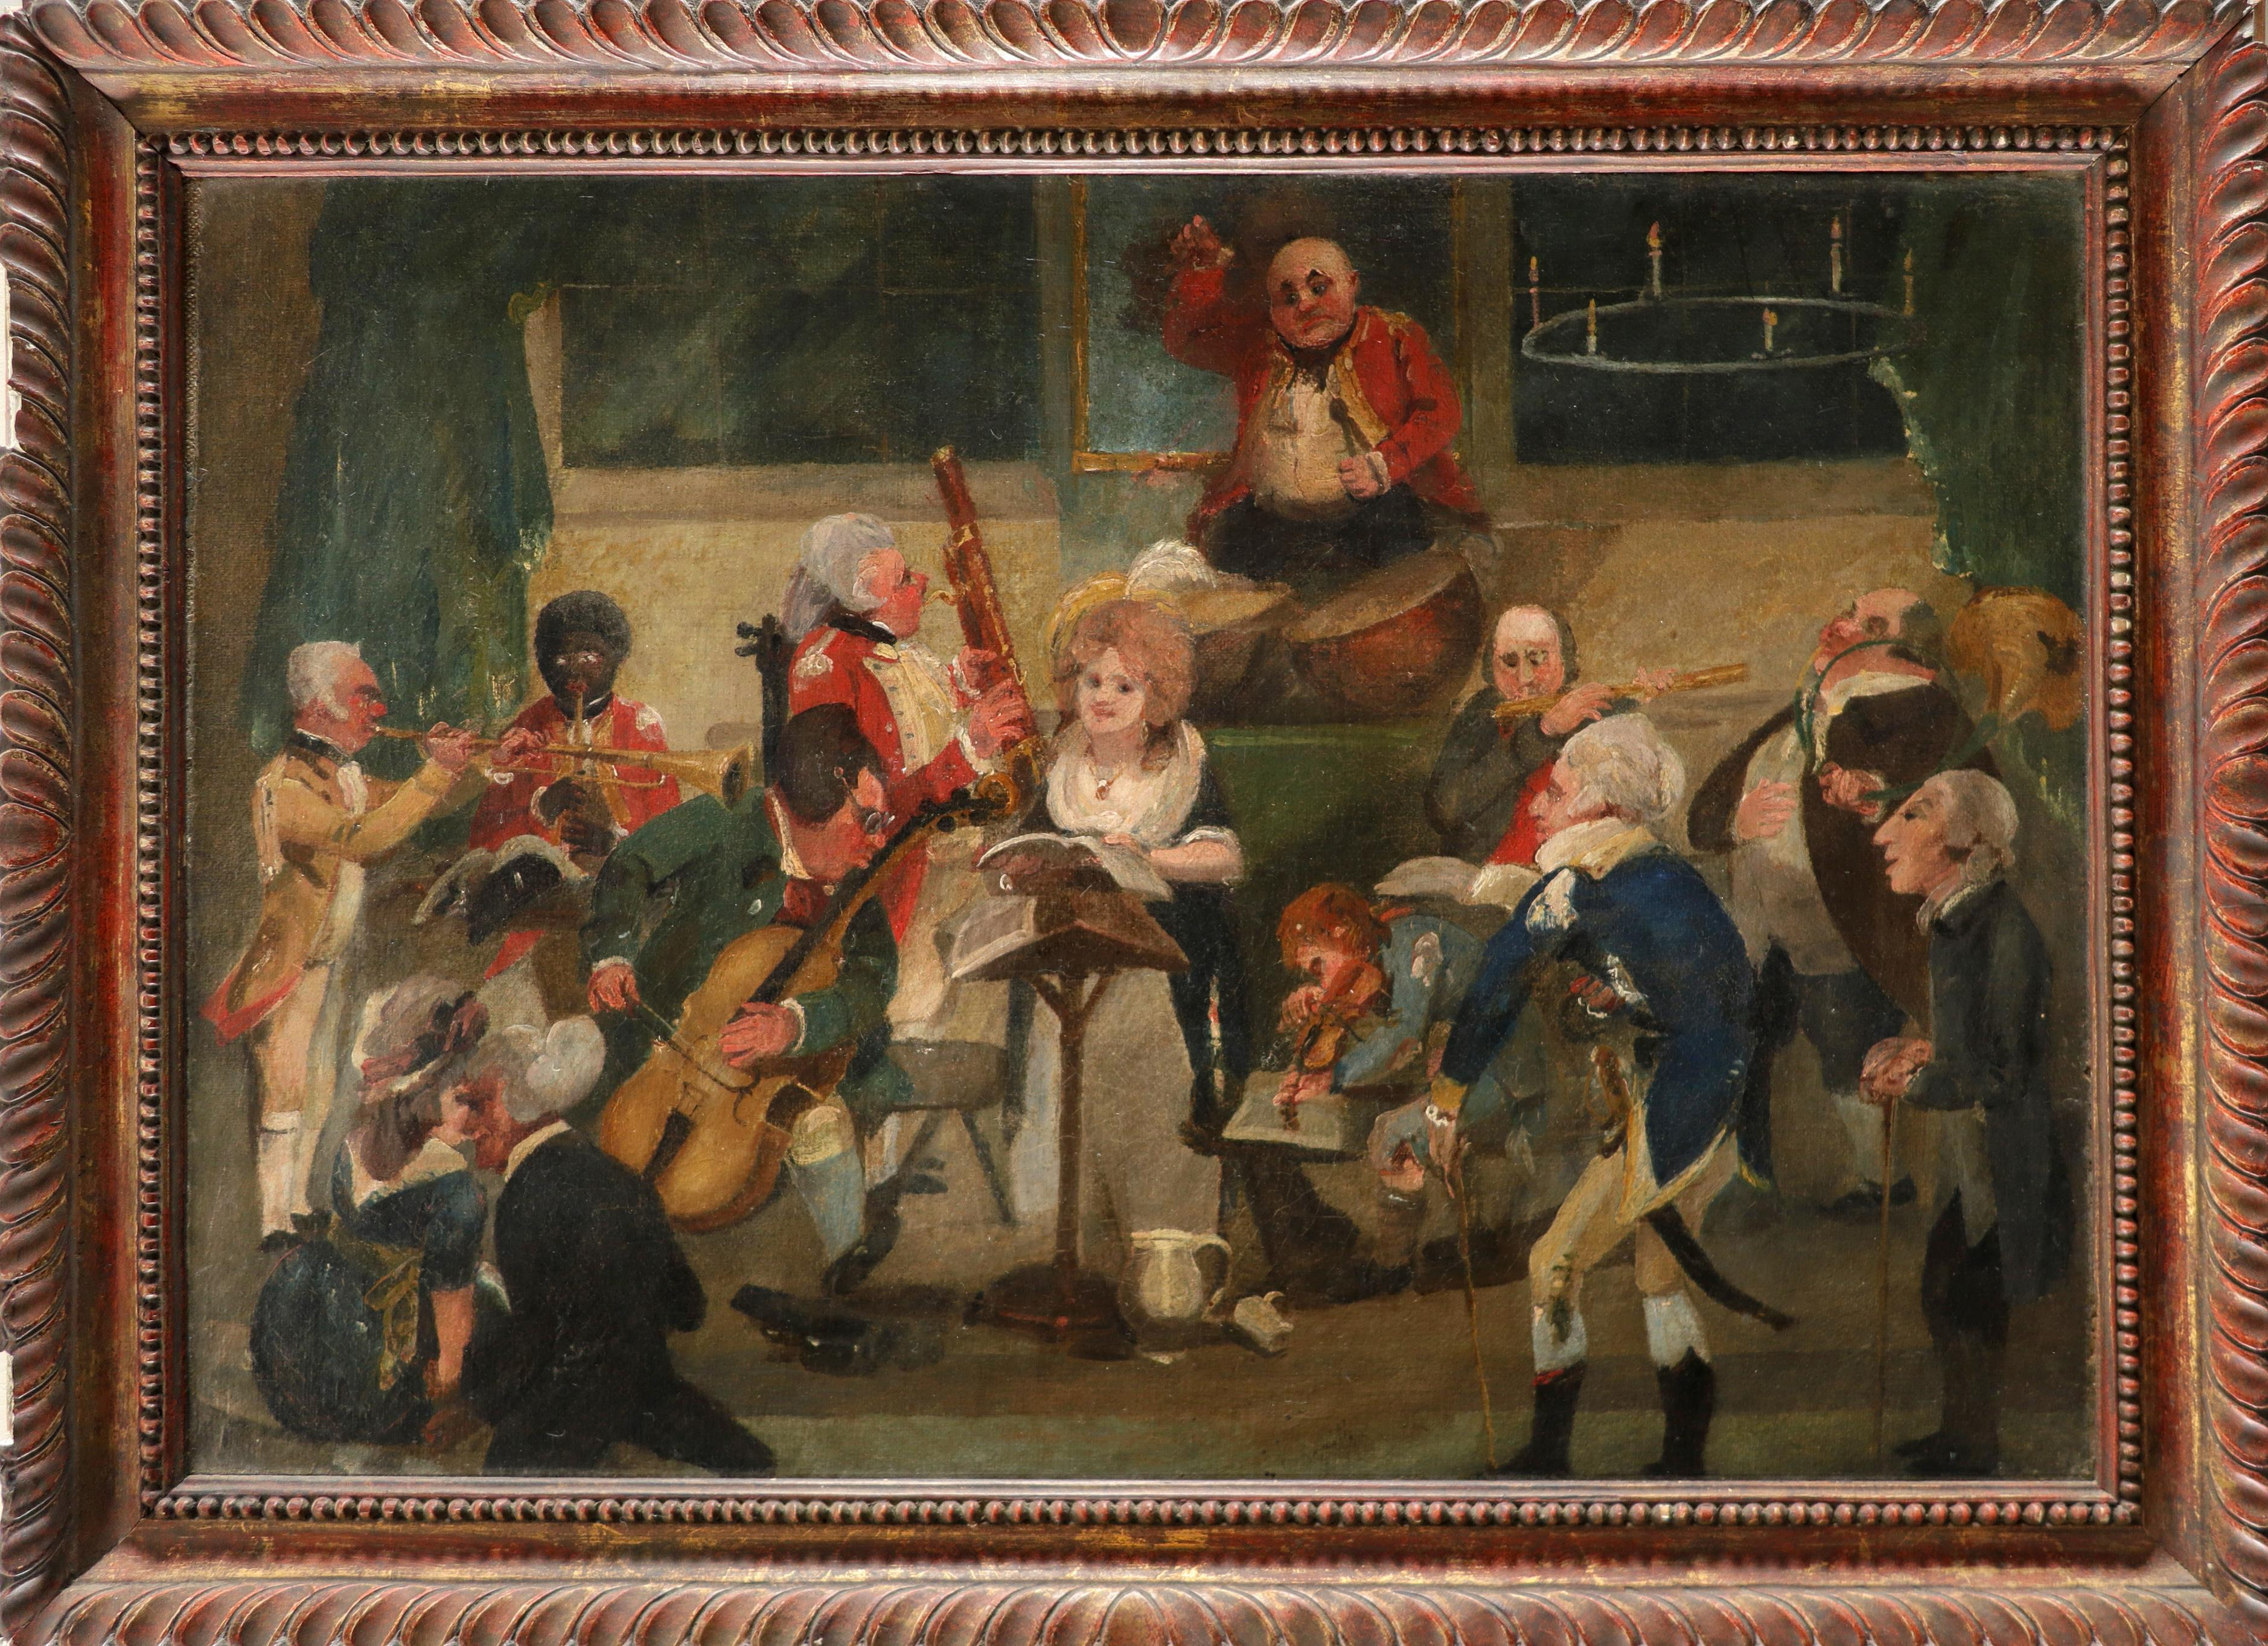 After C. L. Smith The Country Concert Oil on canvas 34.8 x 50cm; 13¾ x 19¾in Provenance: Christie's, - Image 2 of 3